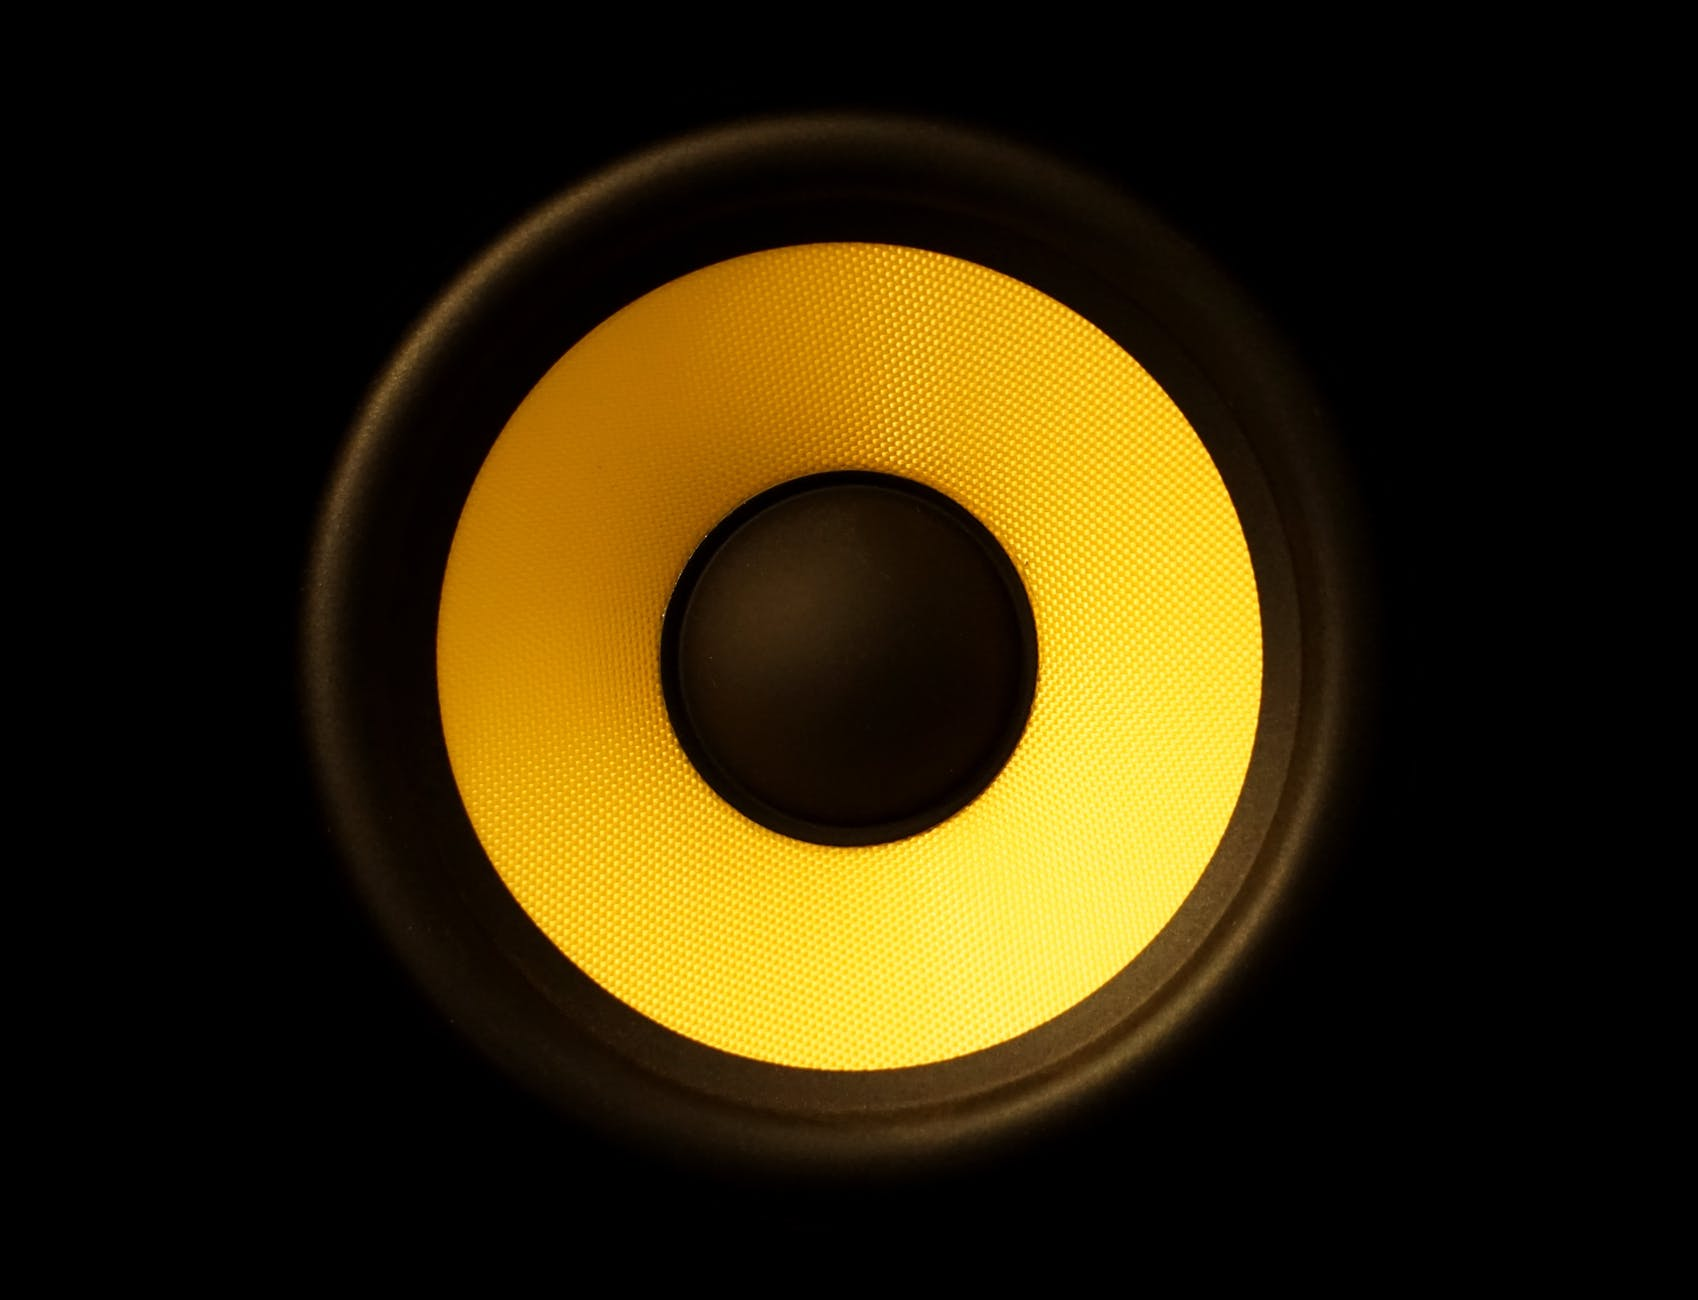 art audio bass bright